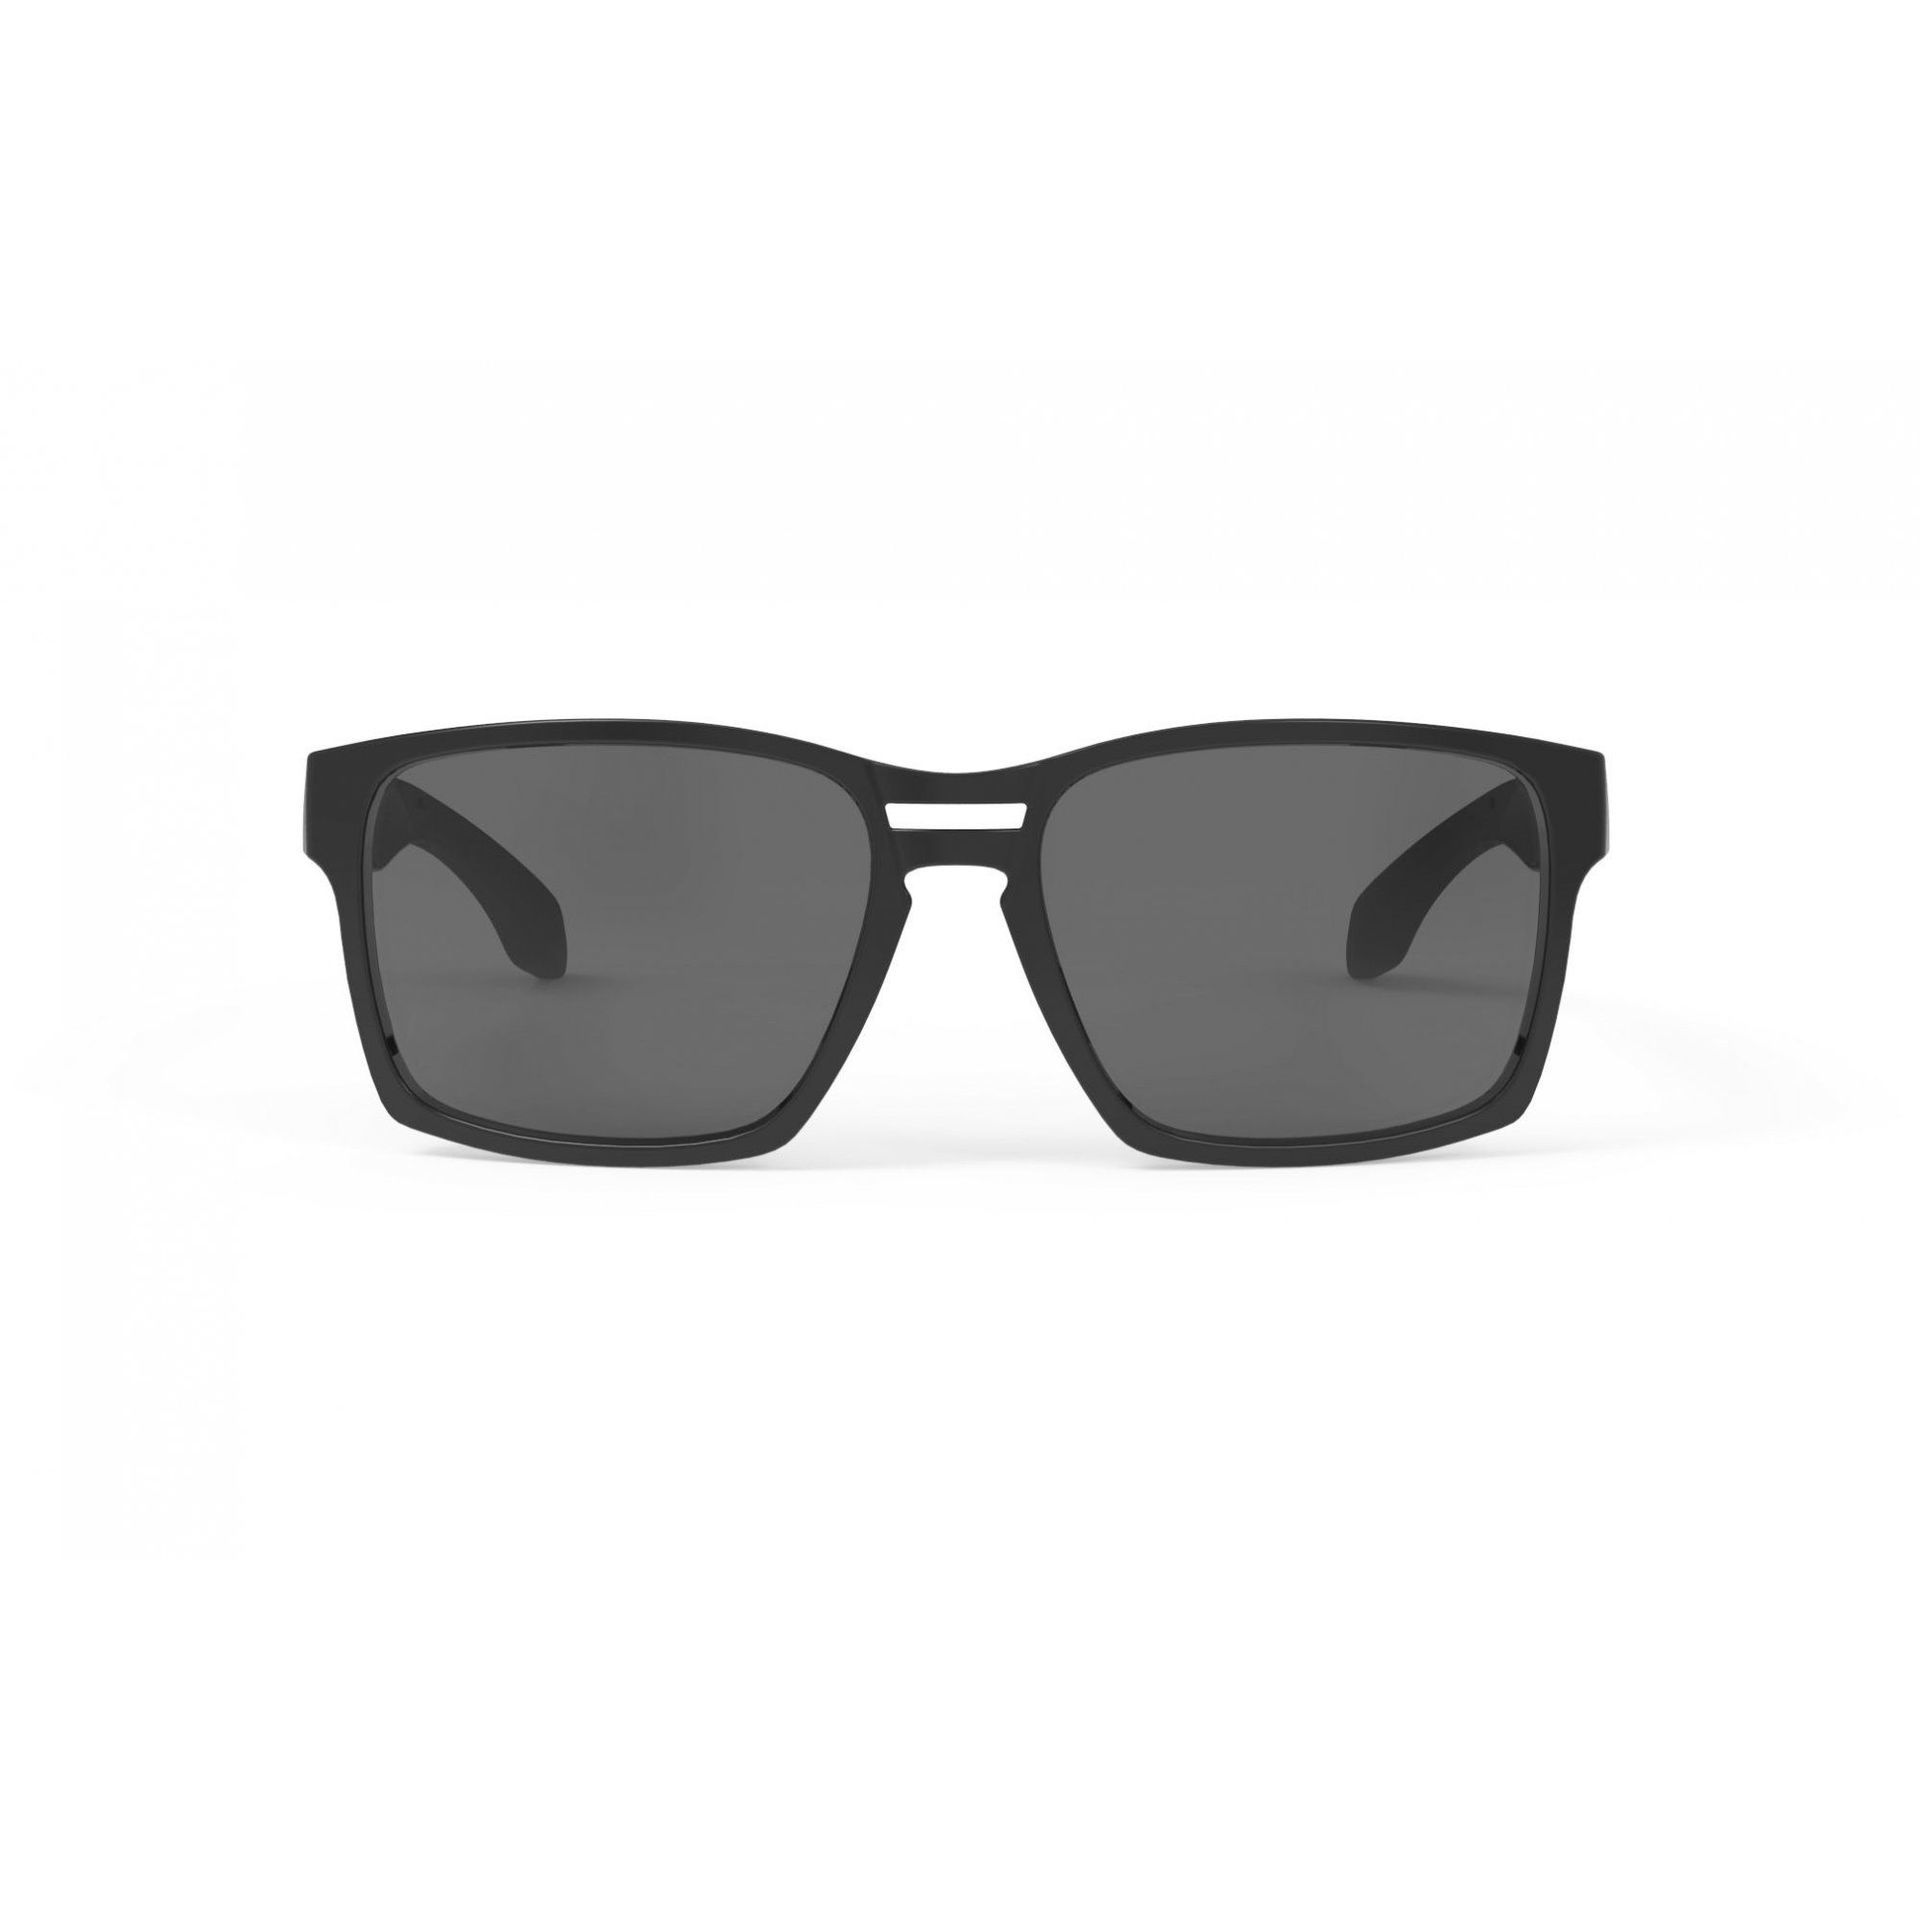 OKULARY RUDY PROJECT SPINAIR 57 BLACK + SMOKE BLACK SP571042 2